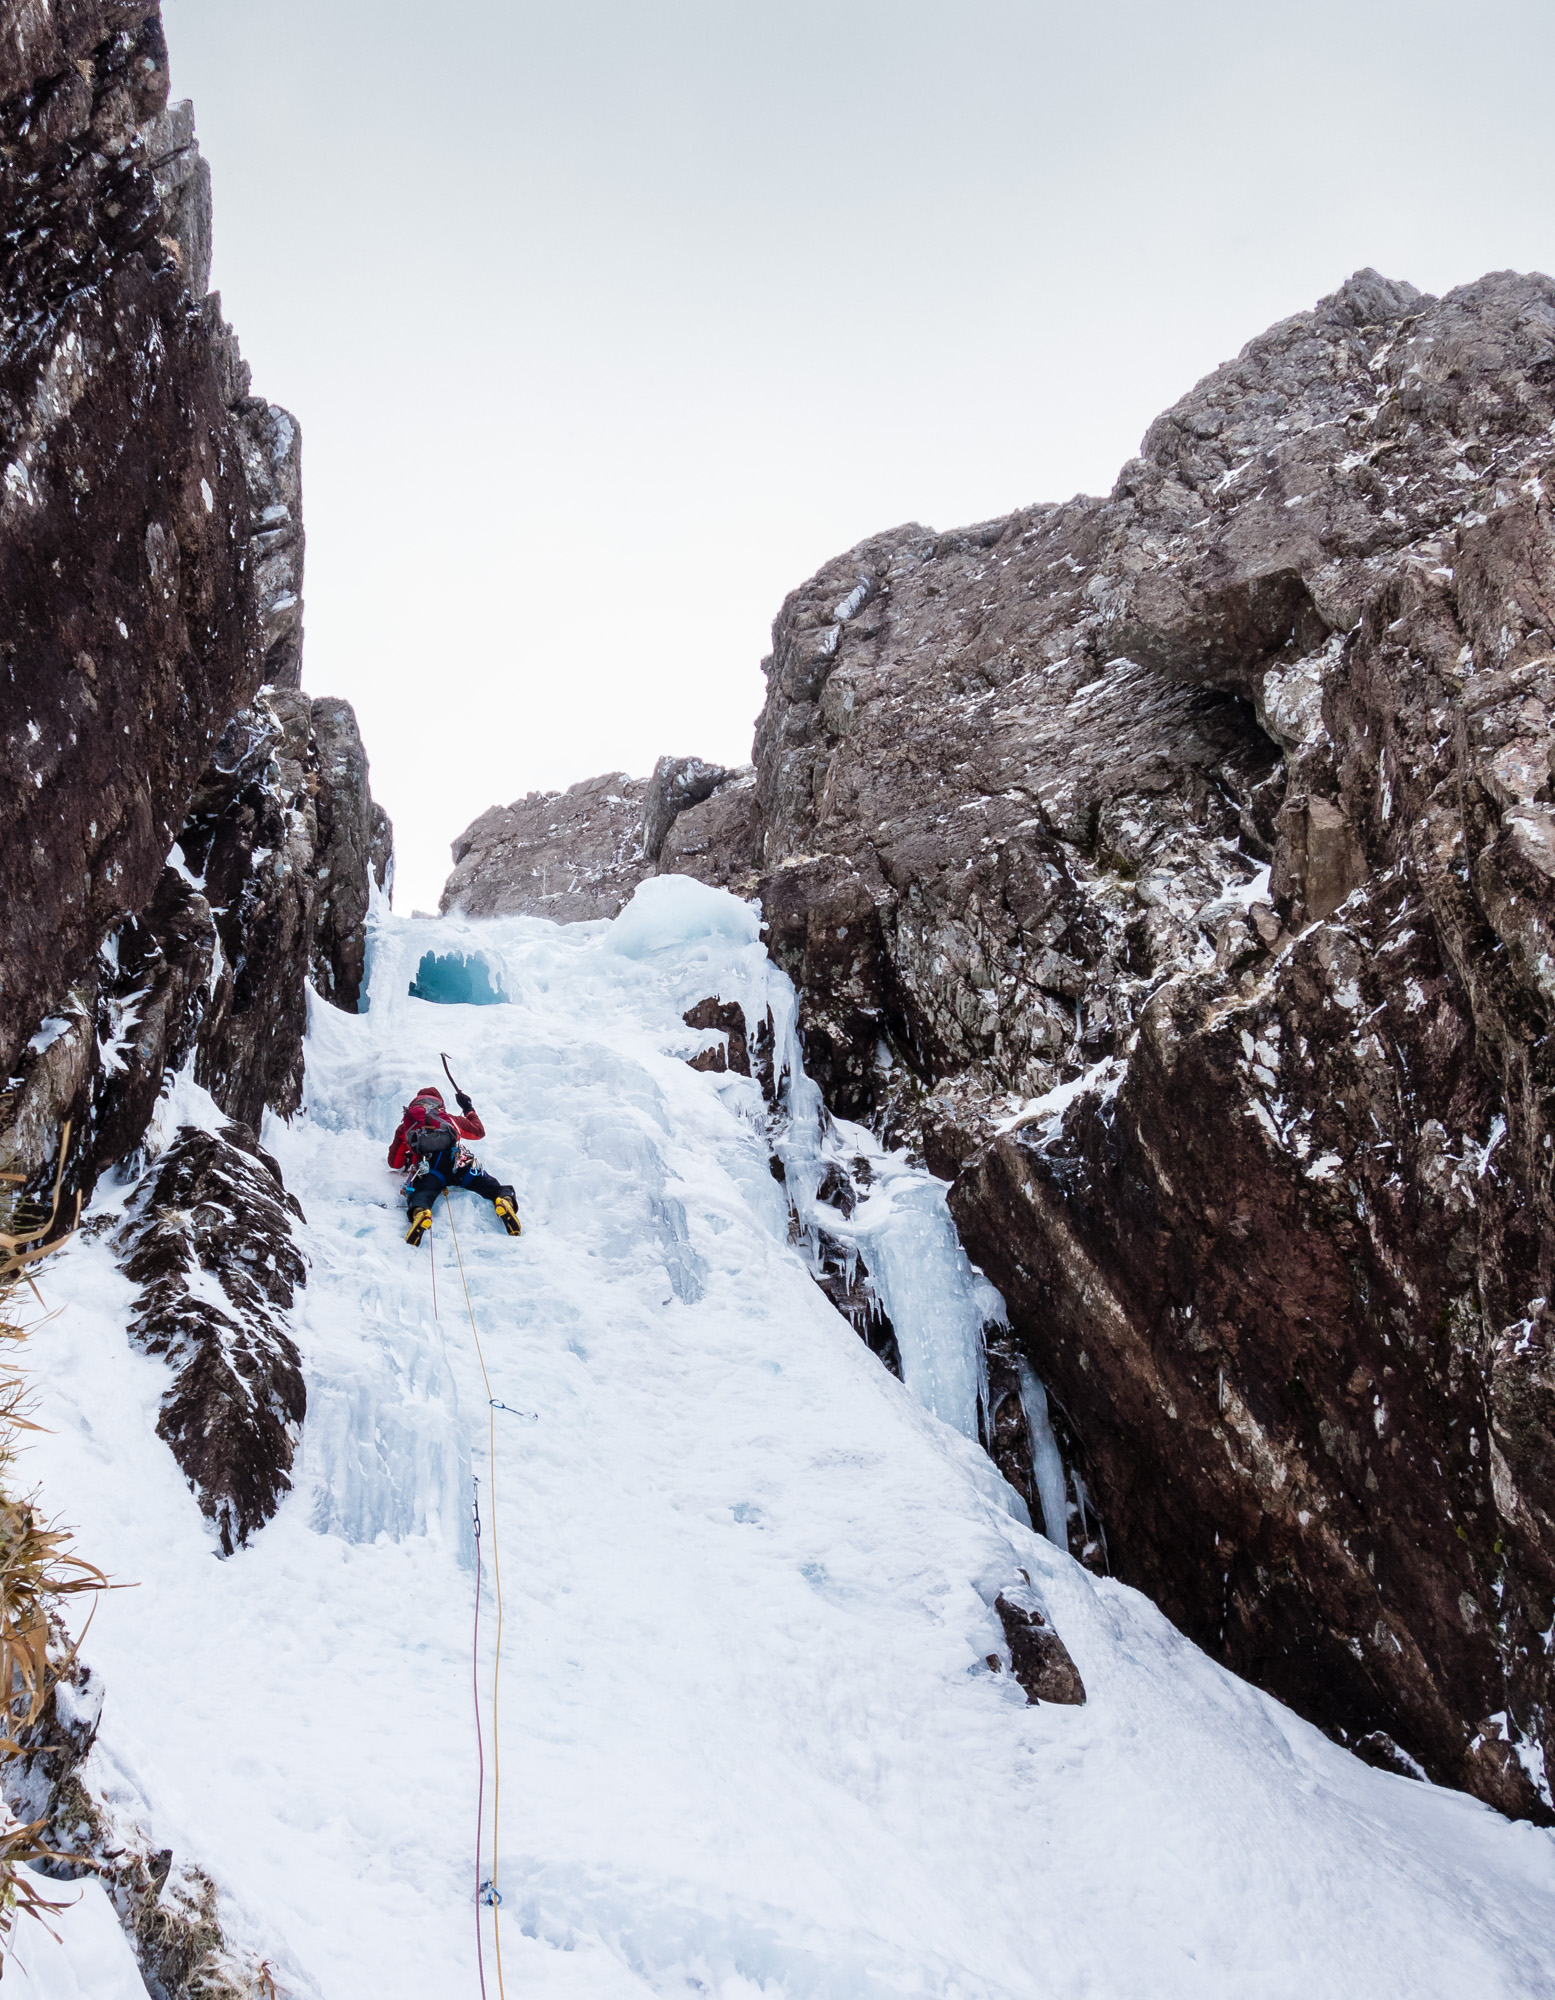 The crux pitch was stepped out but interest was maintained by the variable ice quality and the need to pull funky shapes to bypass the ice umbrella at the top. Photo credit: Ric Hines